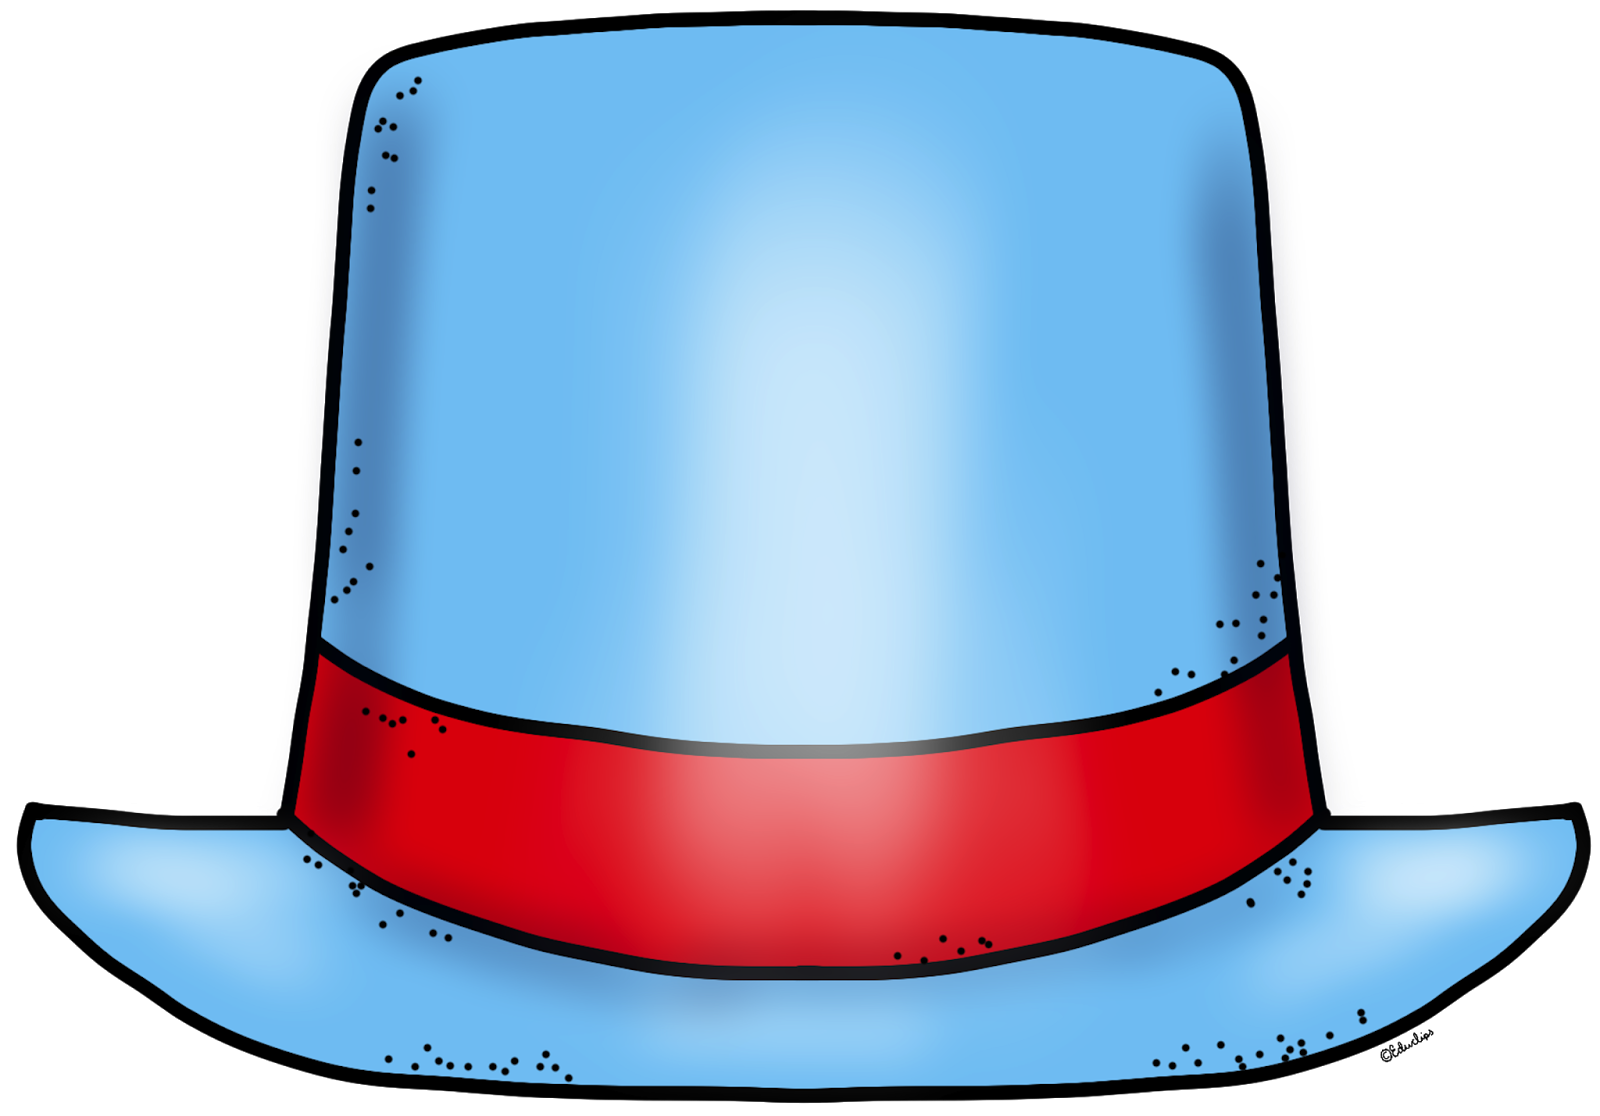 Educlips   Educasong   Free  Blank New Year Top Hat Clip Art